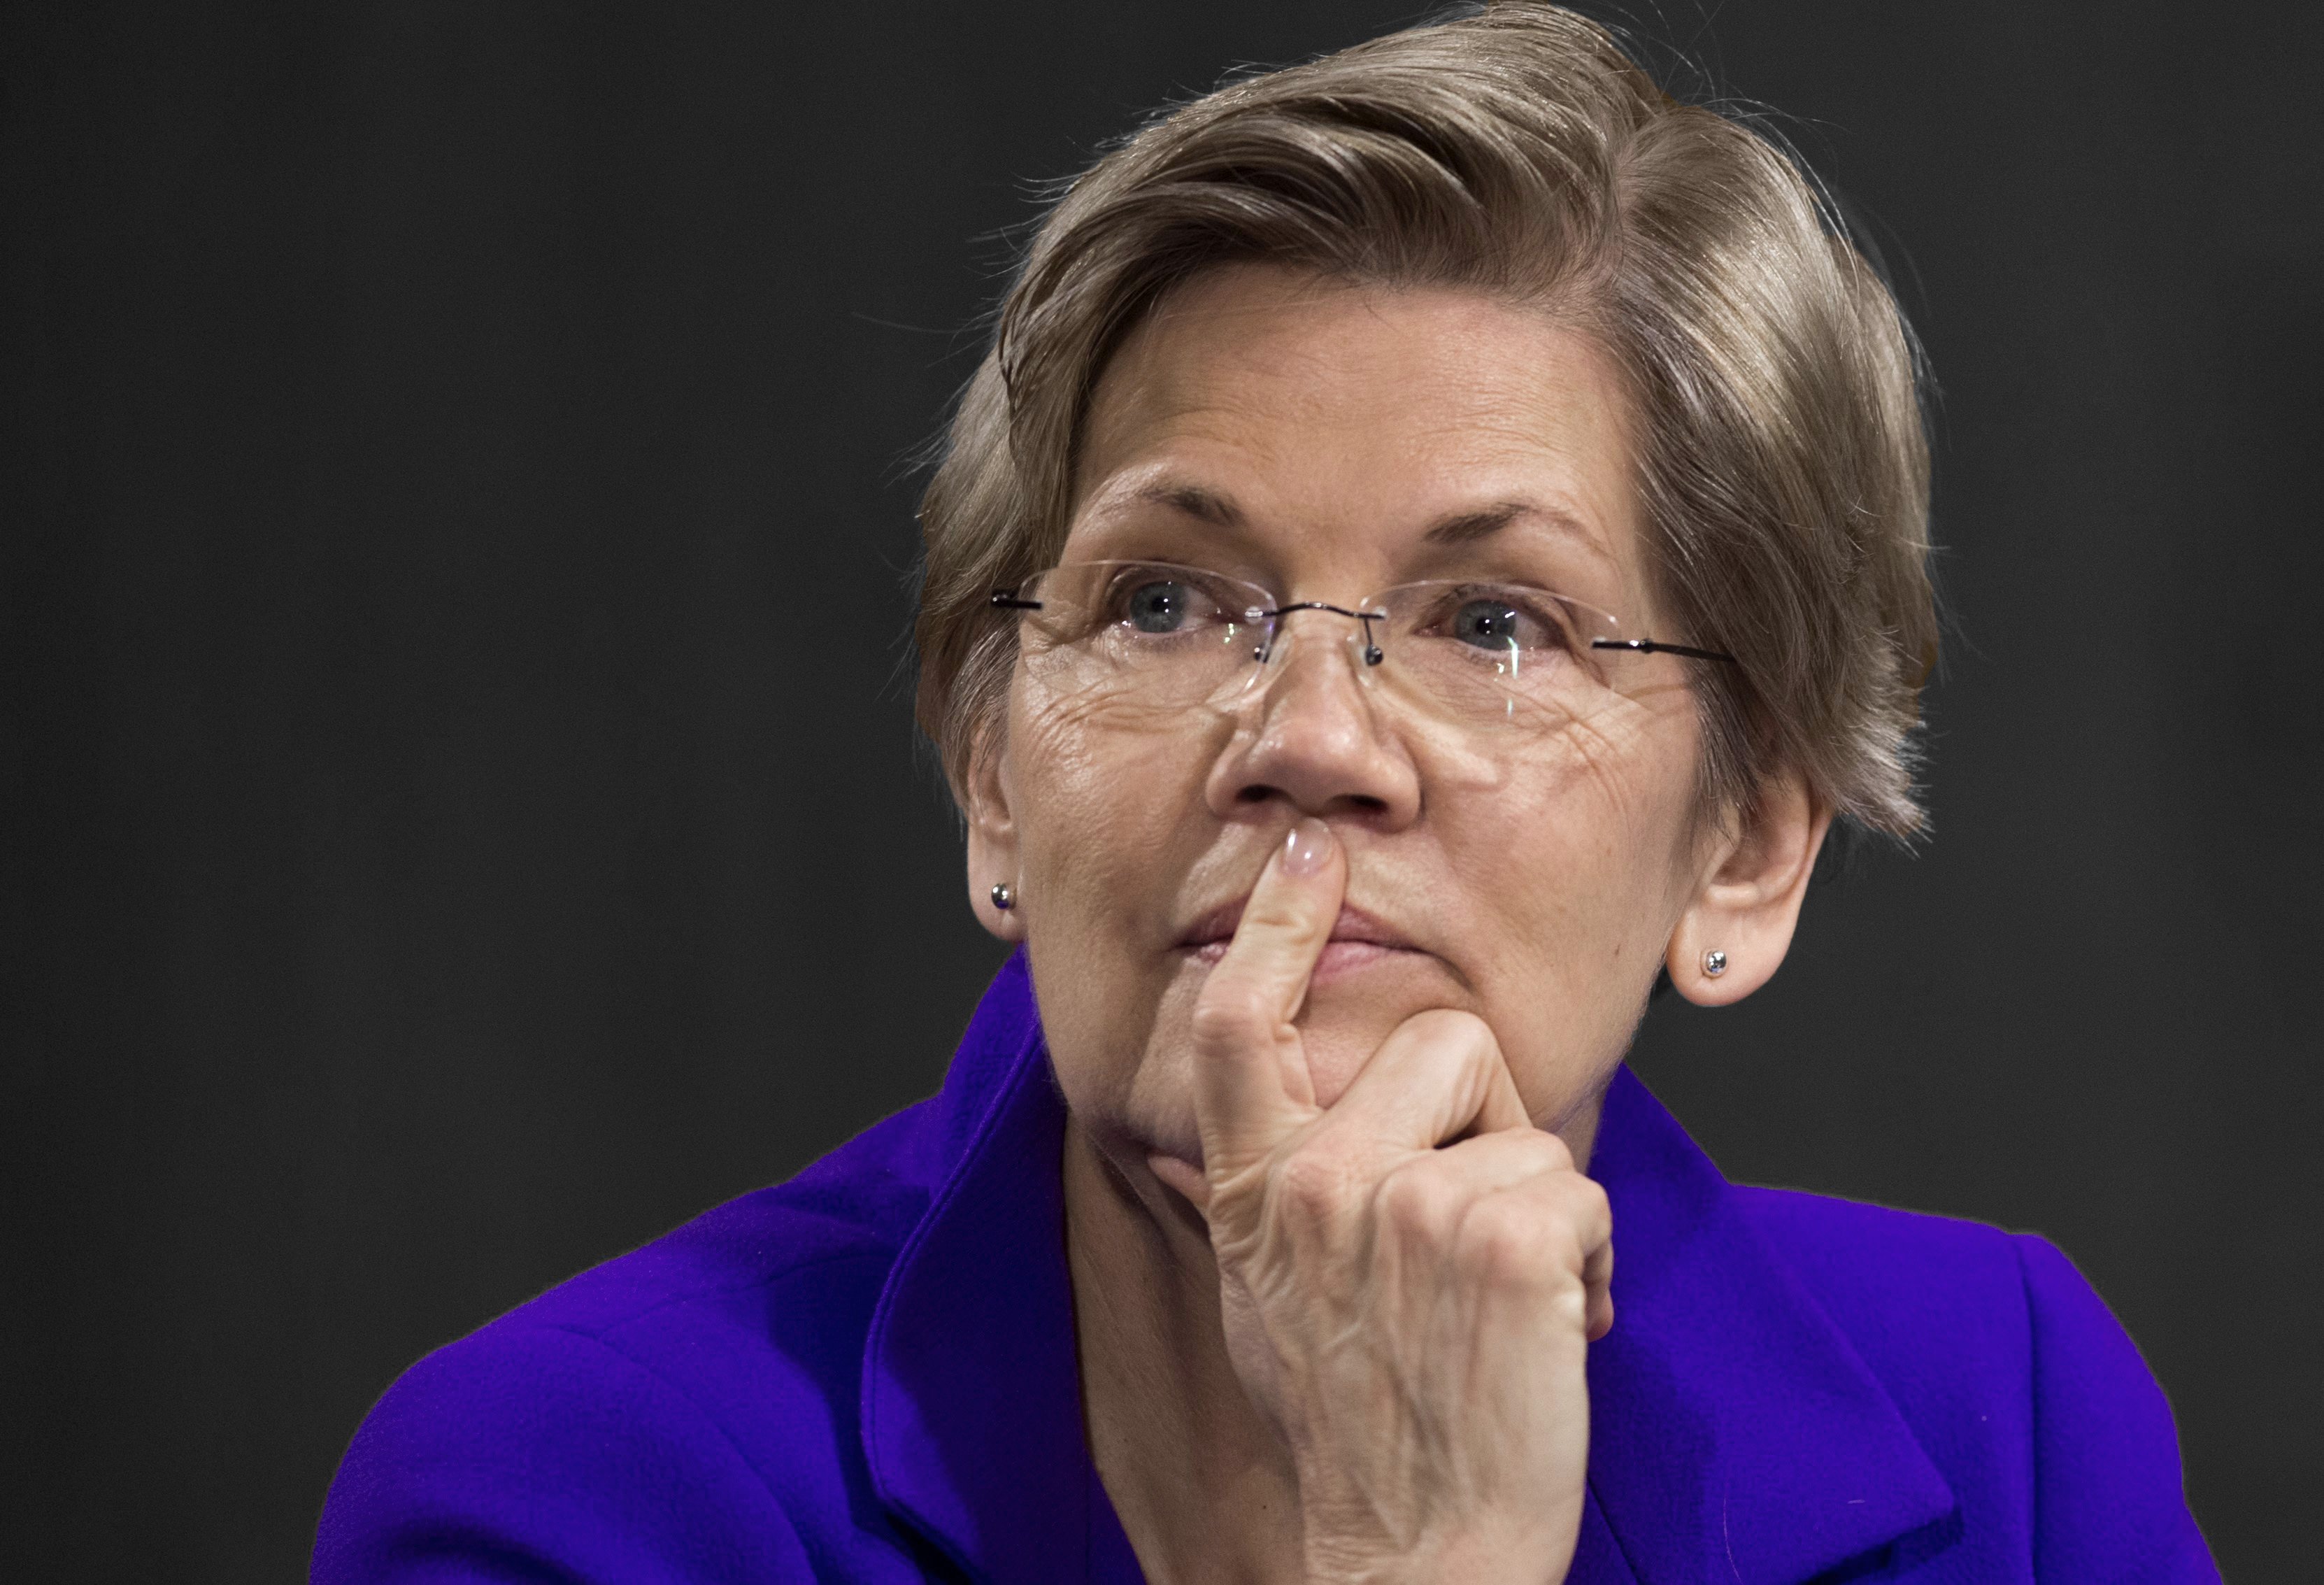 Elizabeth Warren:                                The Massachusetts Senator is a one-woman think tank for Democratic policymaking. Still in her first term, she has a national following that catapults her proposals into the limelight, even though few of them will become law in the Republican-controlled Congress.